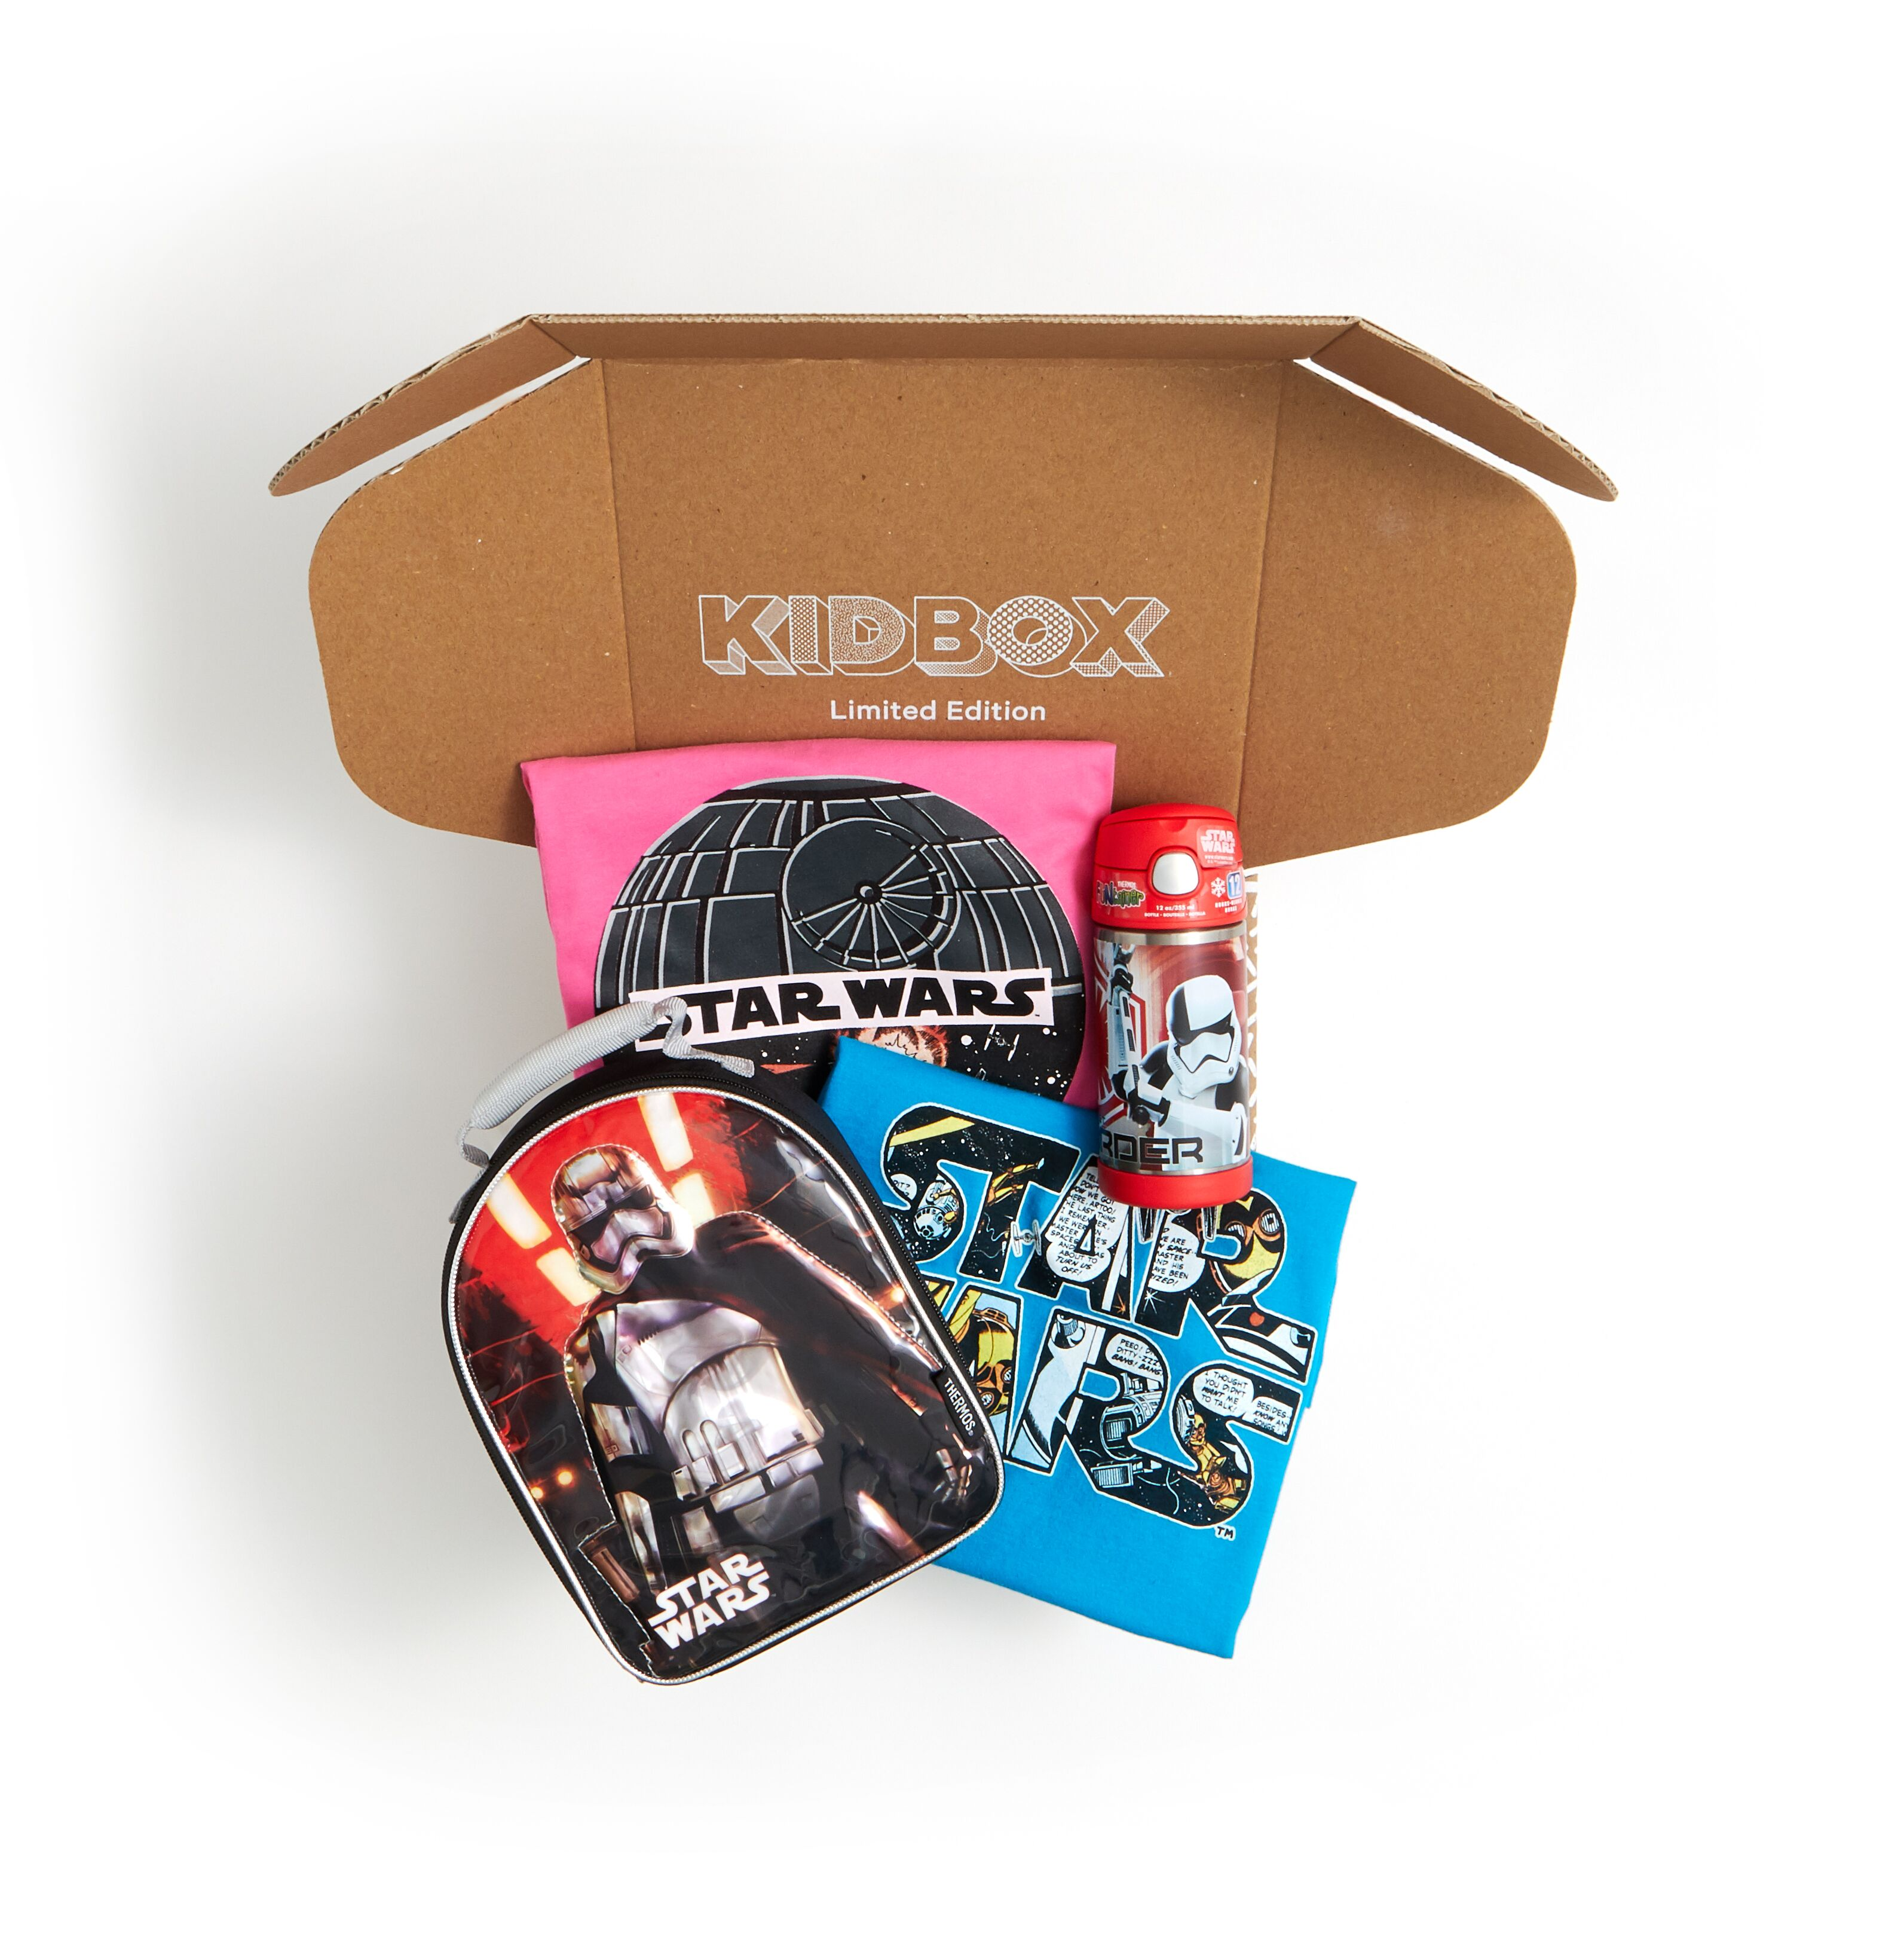 KIDBOX Launches Disney, Star Wars and Marvel Themed Style Boxes 3